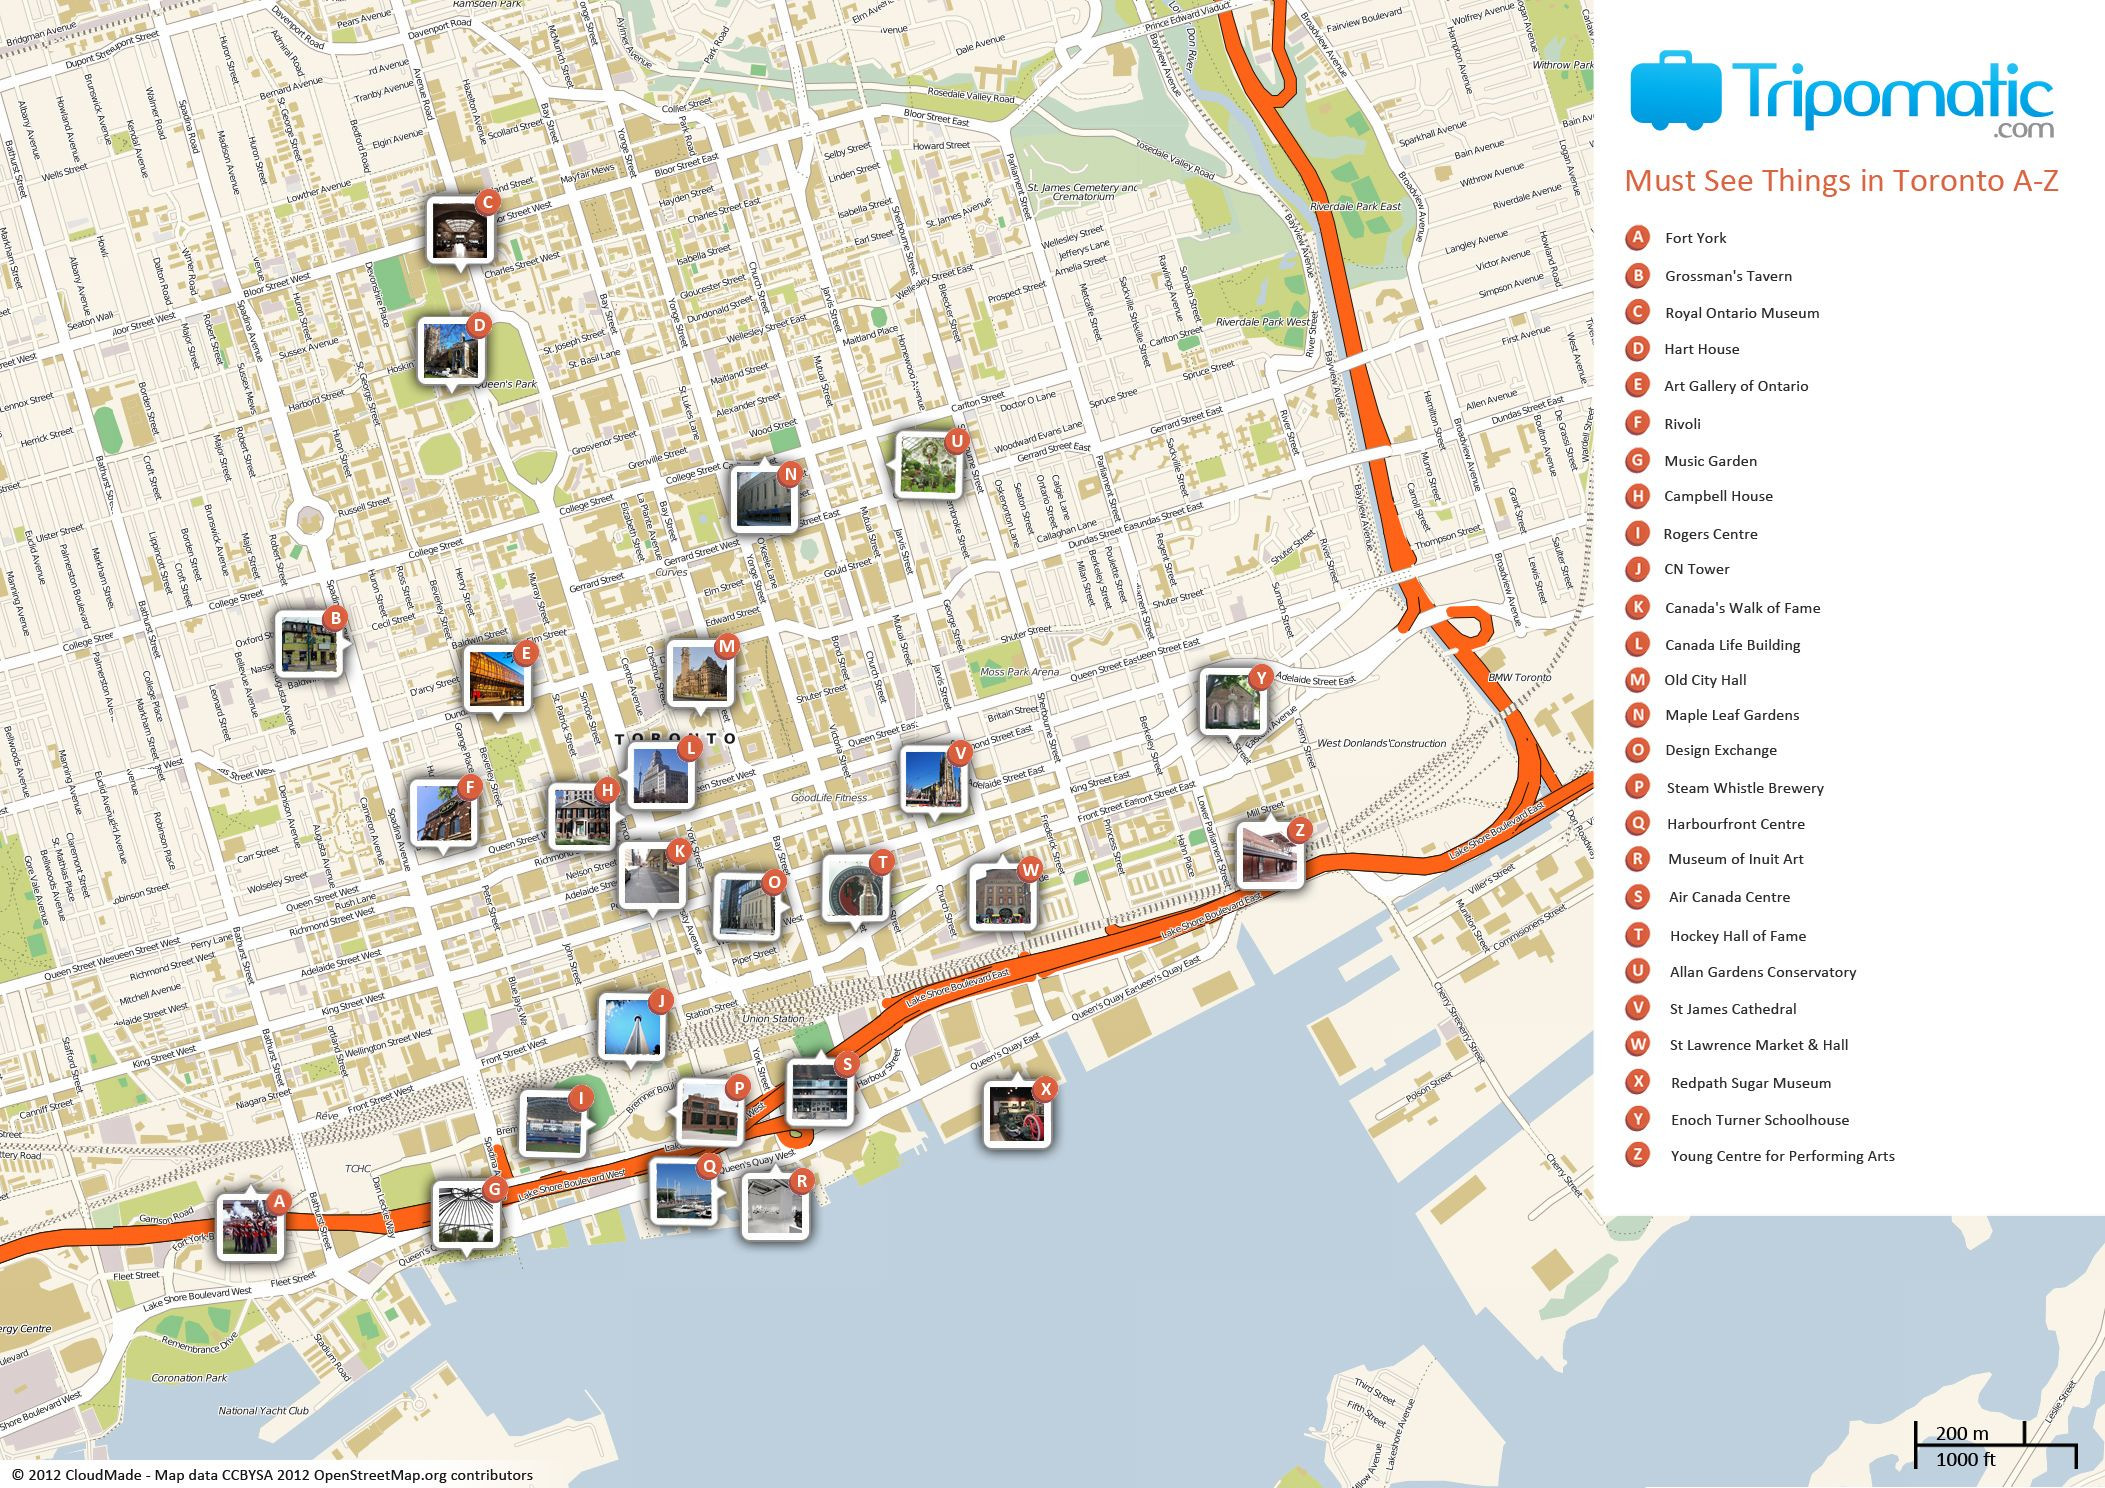 Printable Map Route Beautiful toronto Printable tourist Map Free tourist Maps ✈